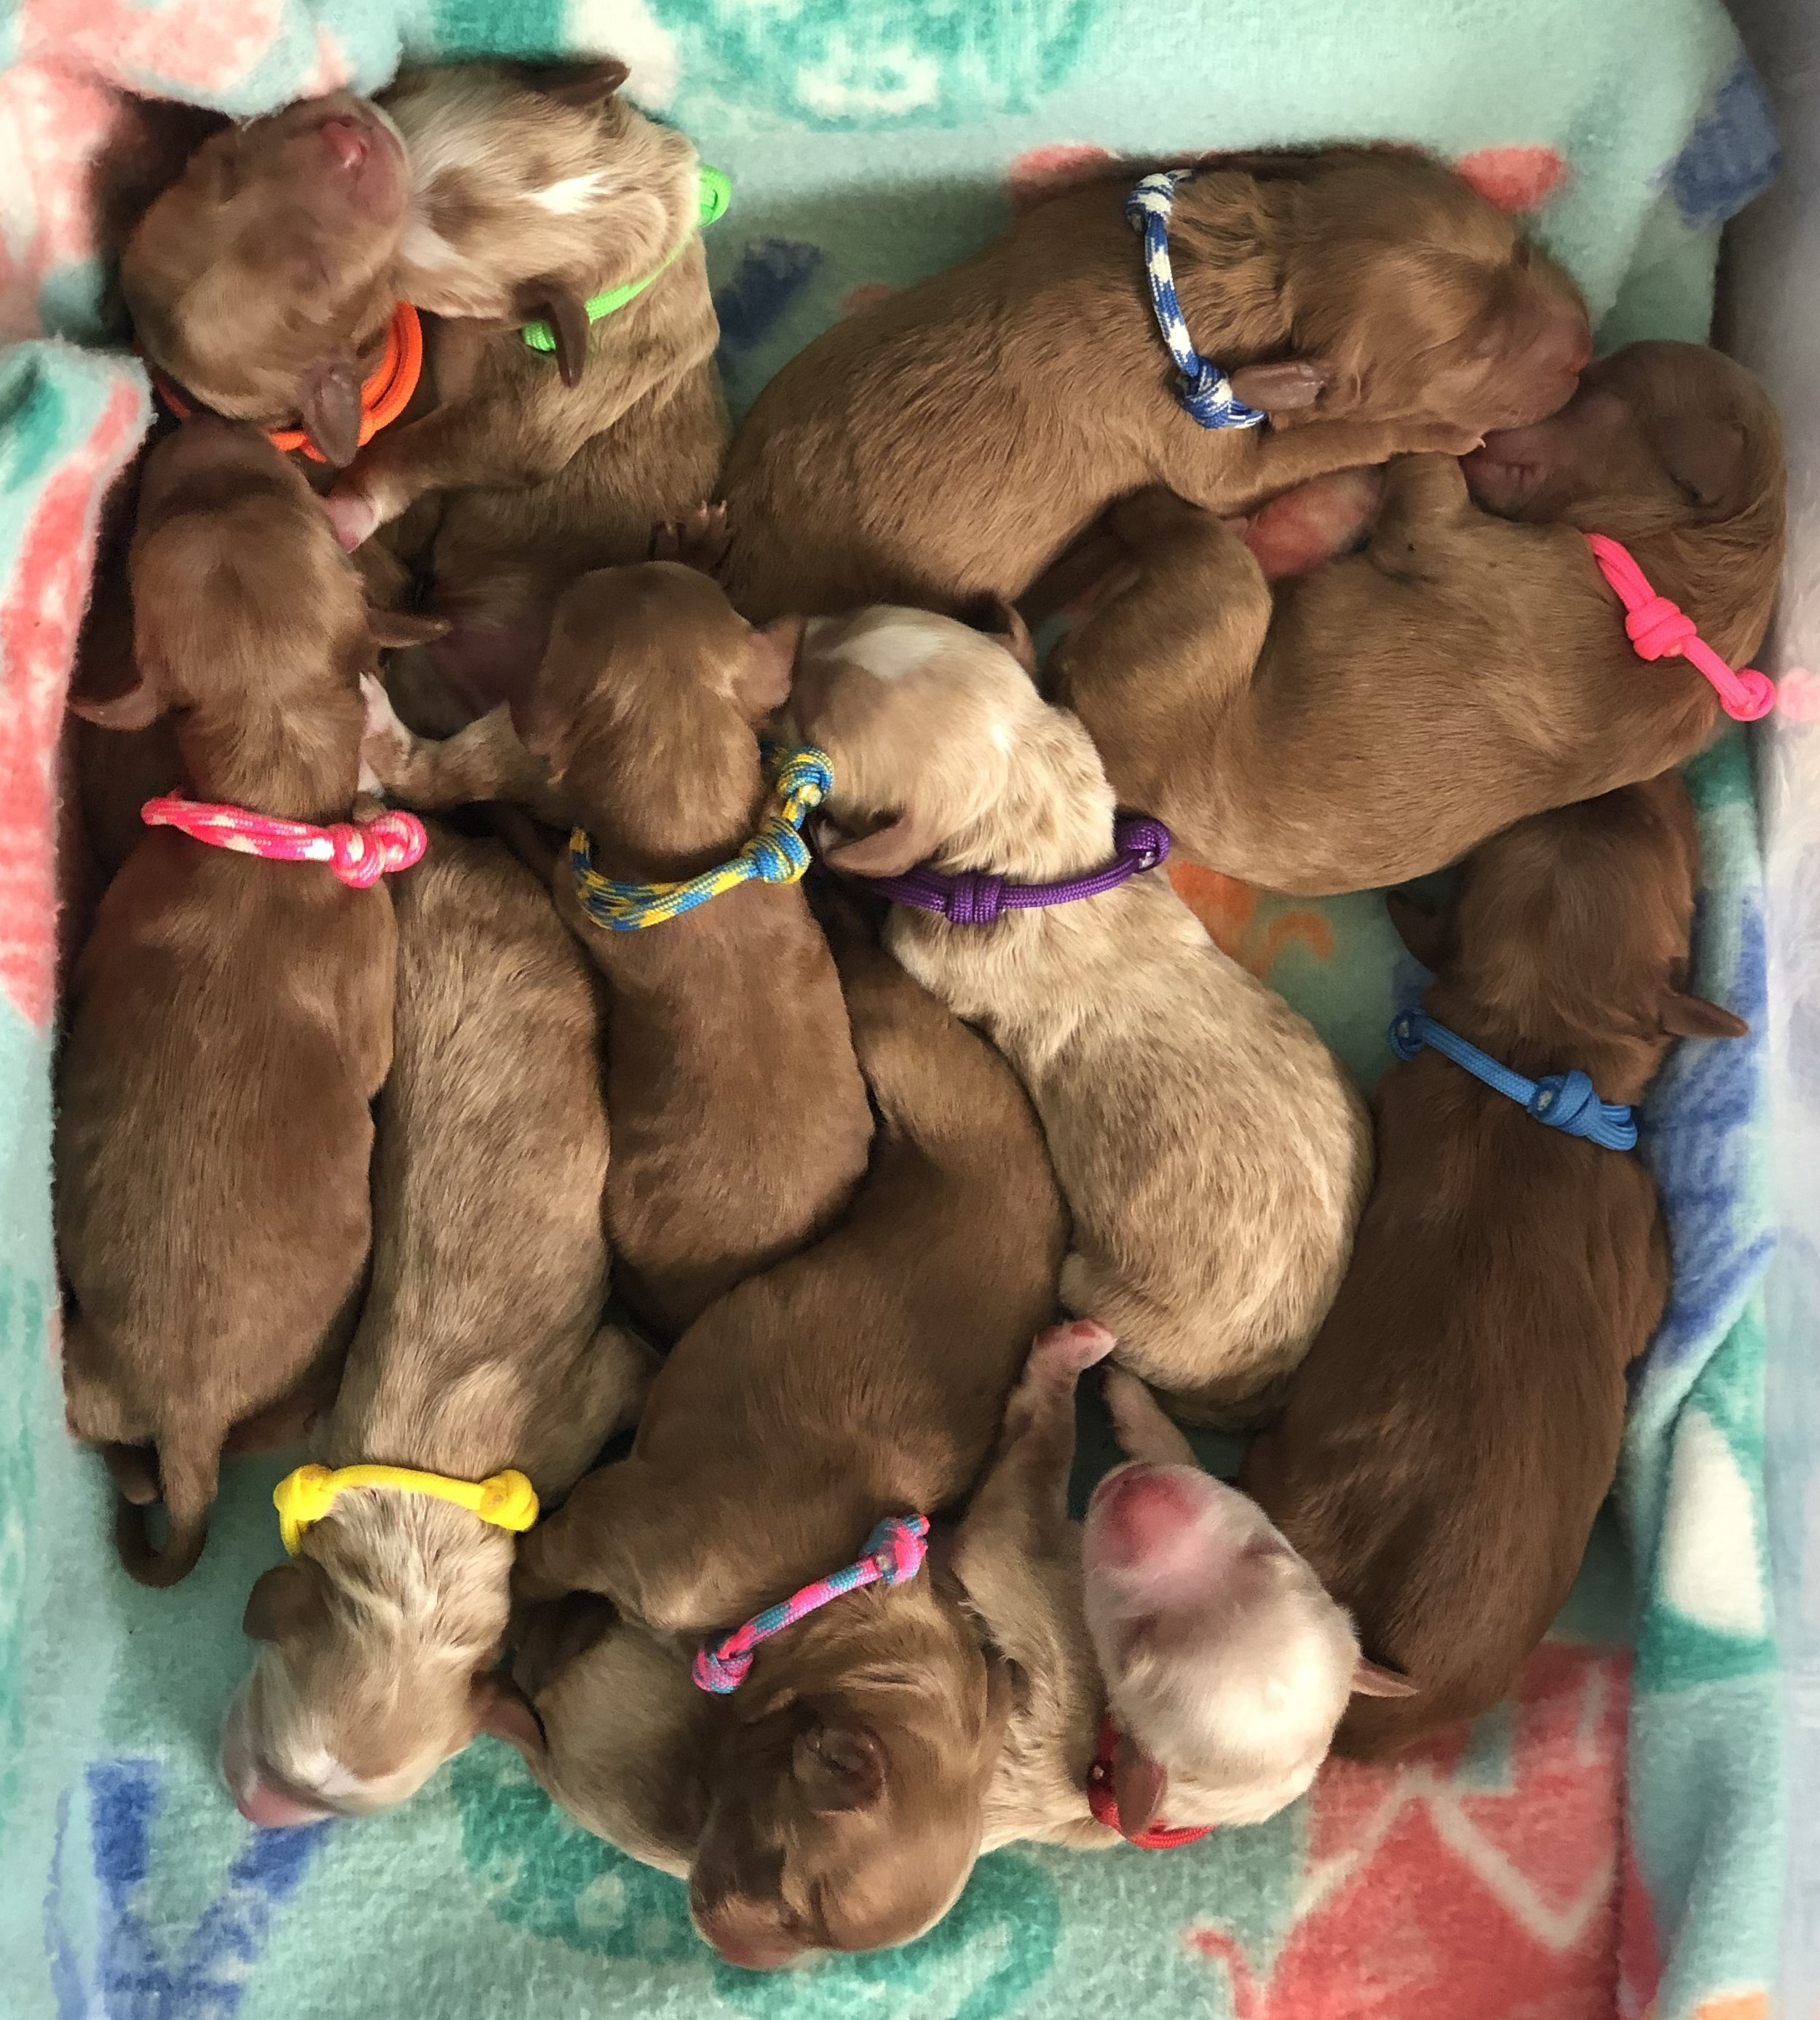 Bertie, Gussie, Jasper, Peggy, Cora, Beatrice, Mable, Percy, Myrtle, Madeline and Jeeves.